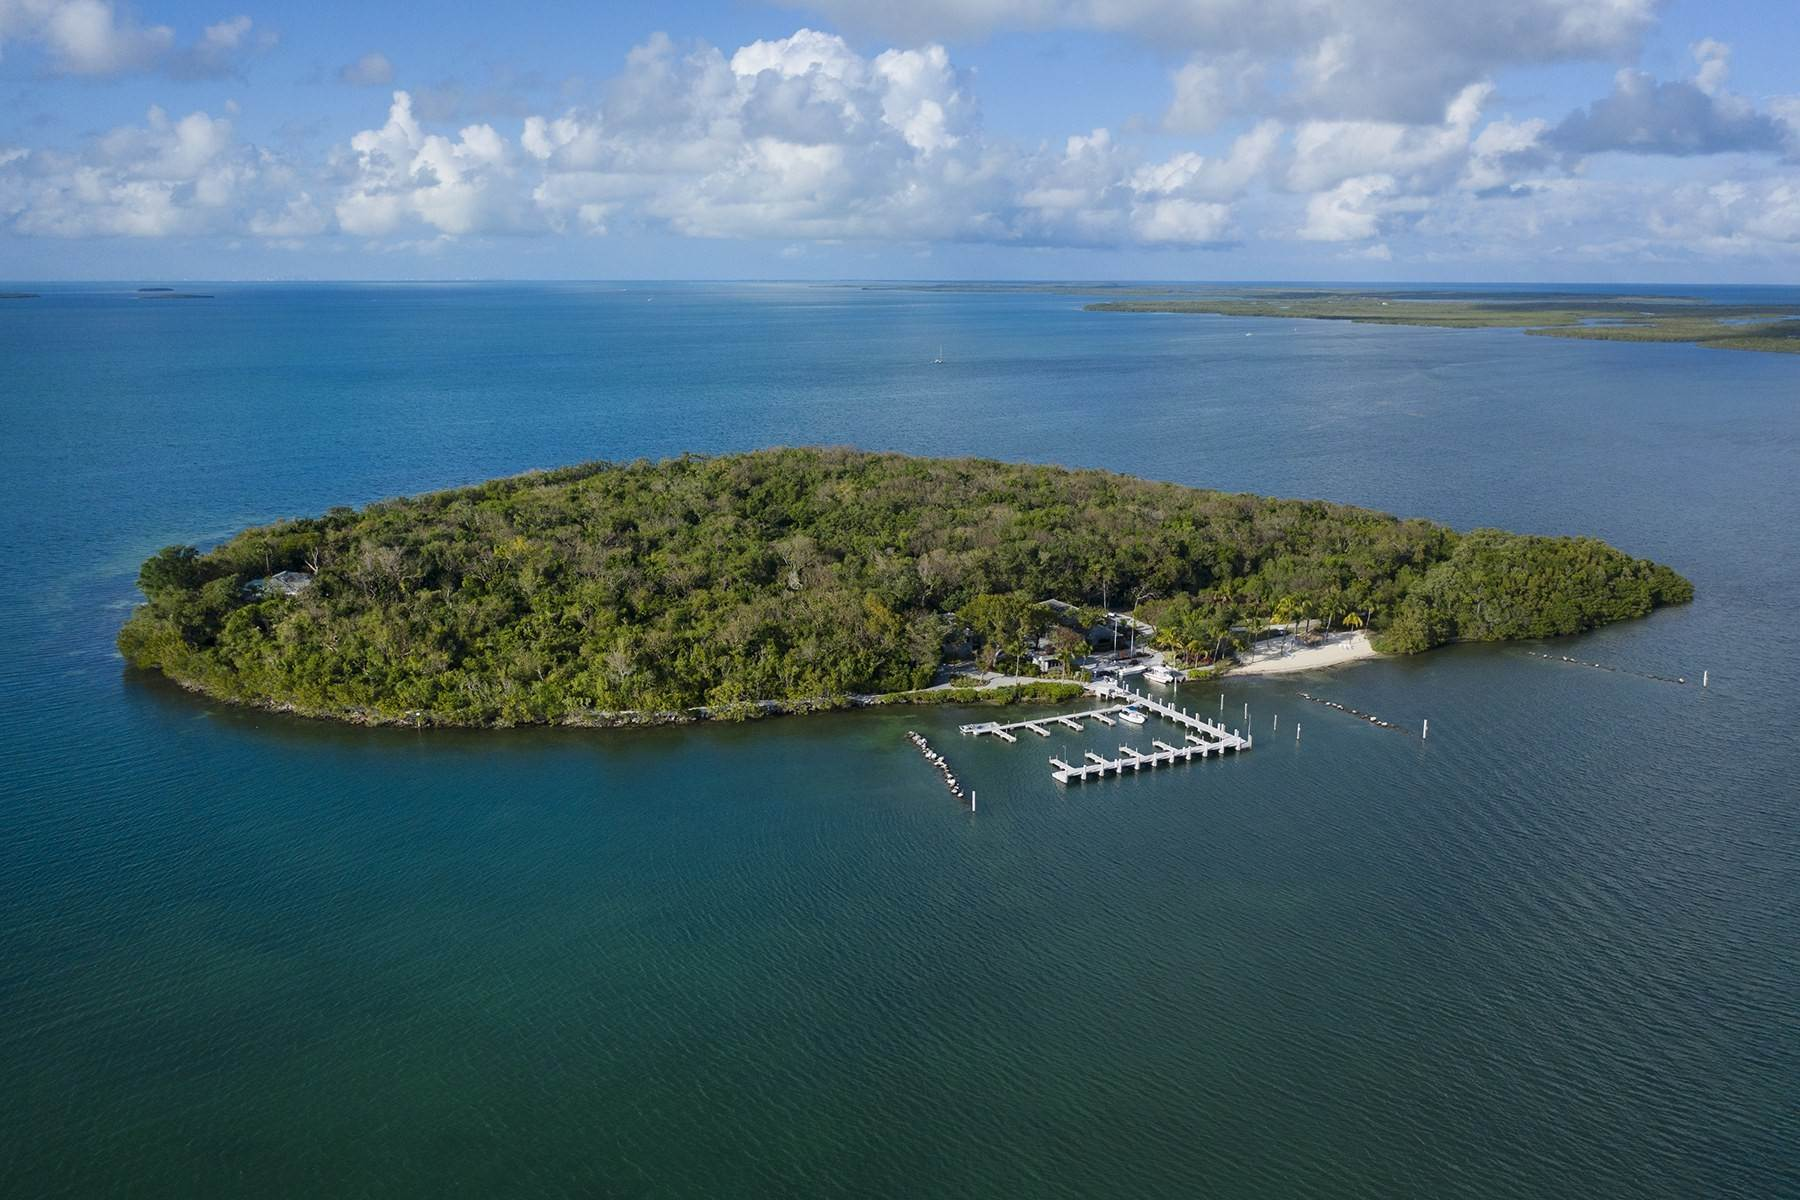 3. Property for Sale at 10 Cannon Point, Key Largo, FL Key Largo, Florida 33037 United States